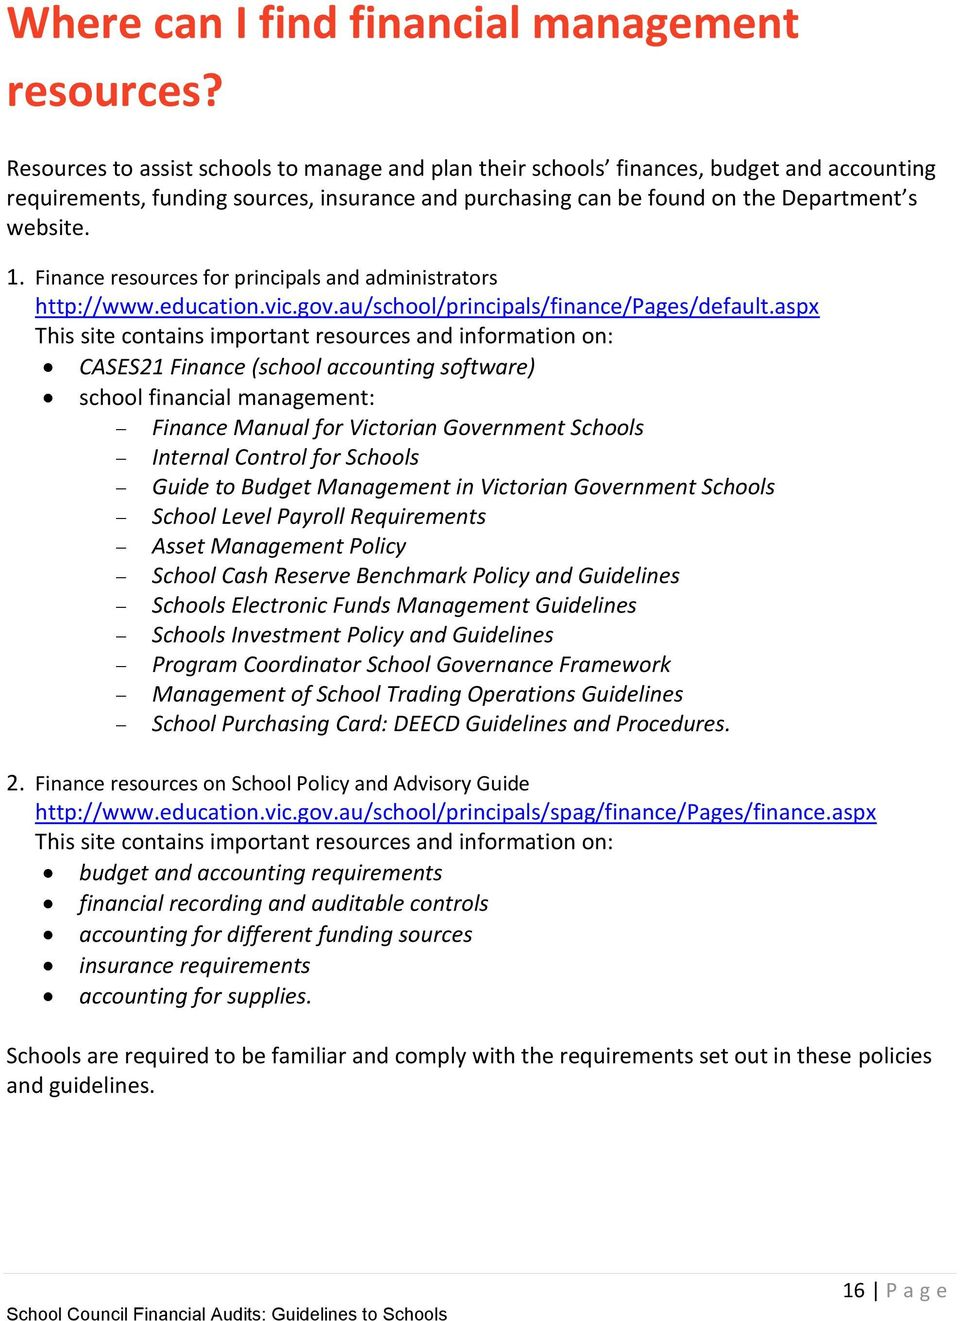 Finance resources for principals and administrators http://www.education.vic.gov.au/school/principals/finance/pages/default.